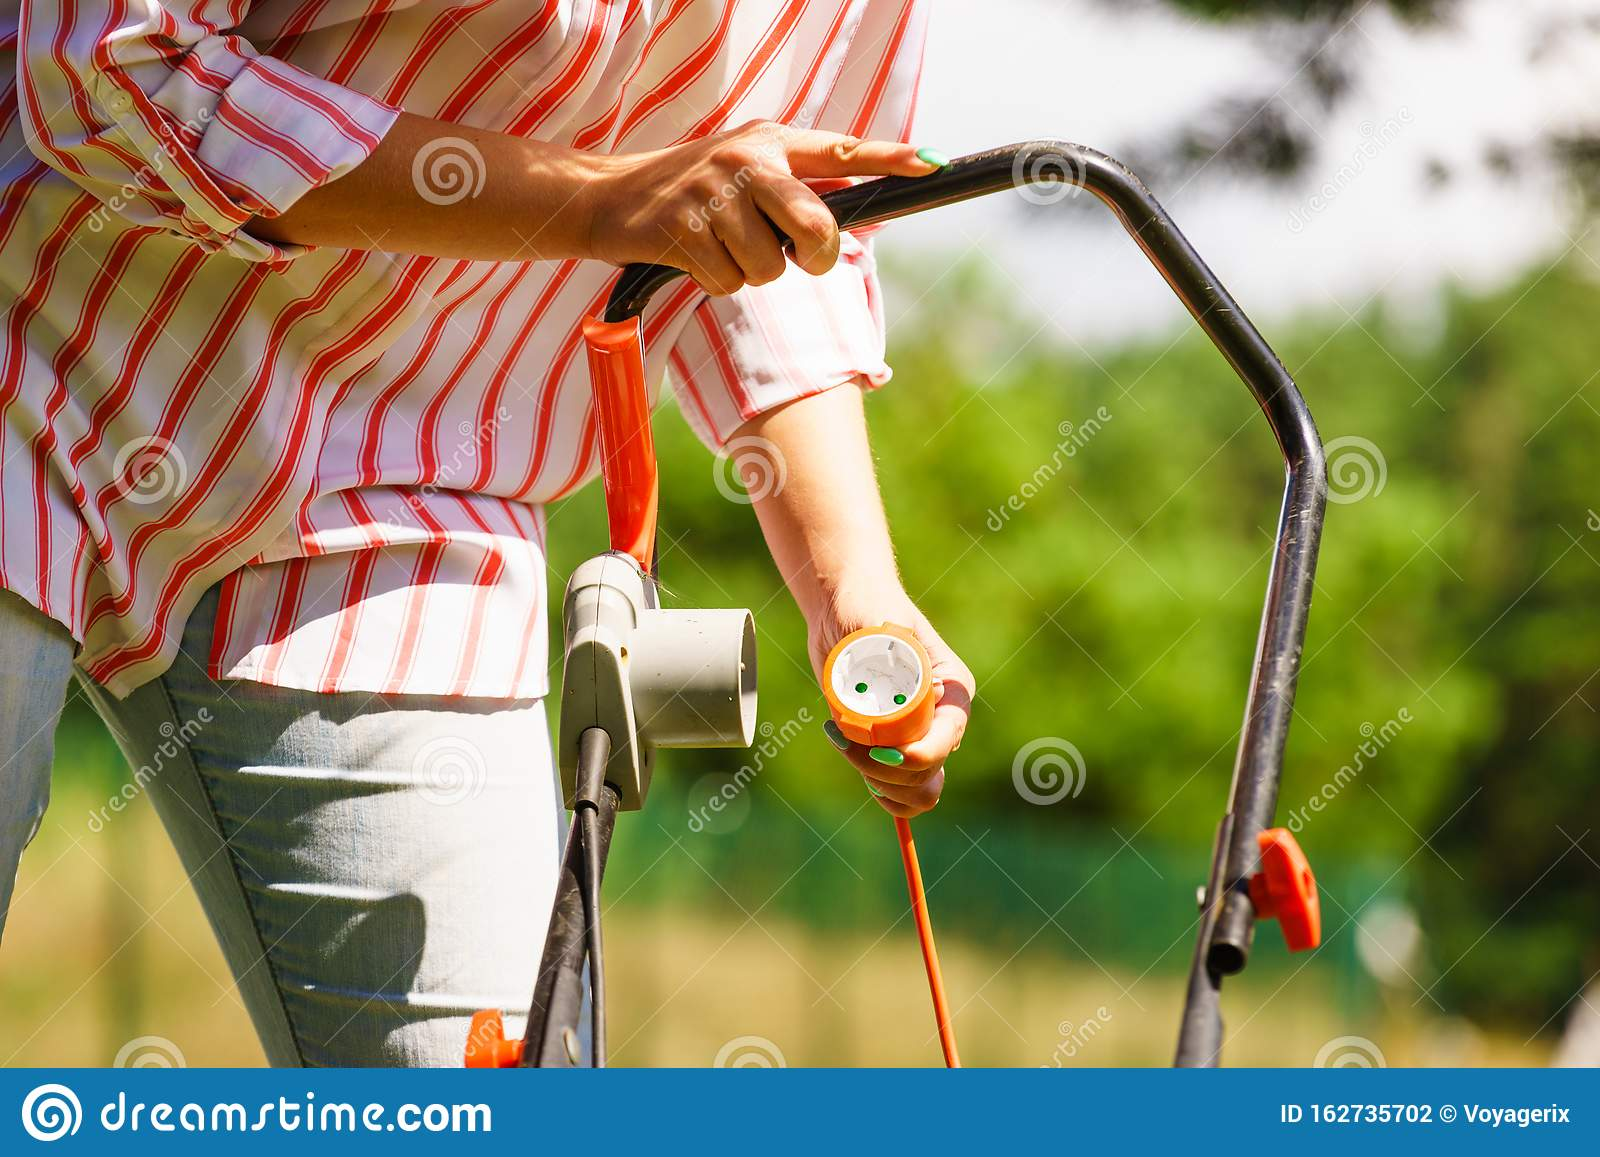 Senior Woman Mowing Grass Stock Photo - Download Image Now